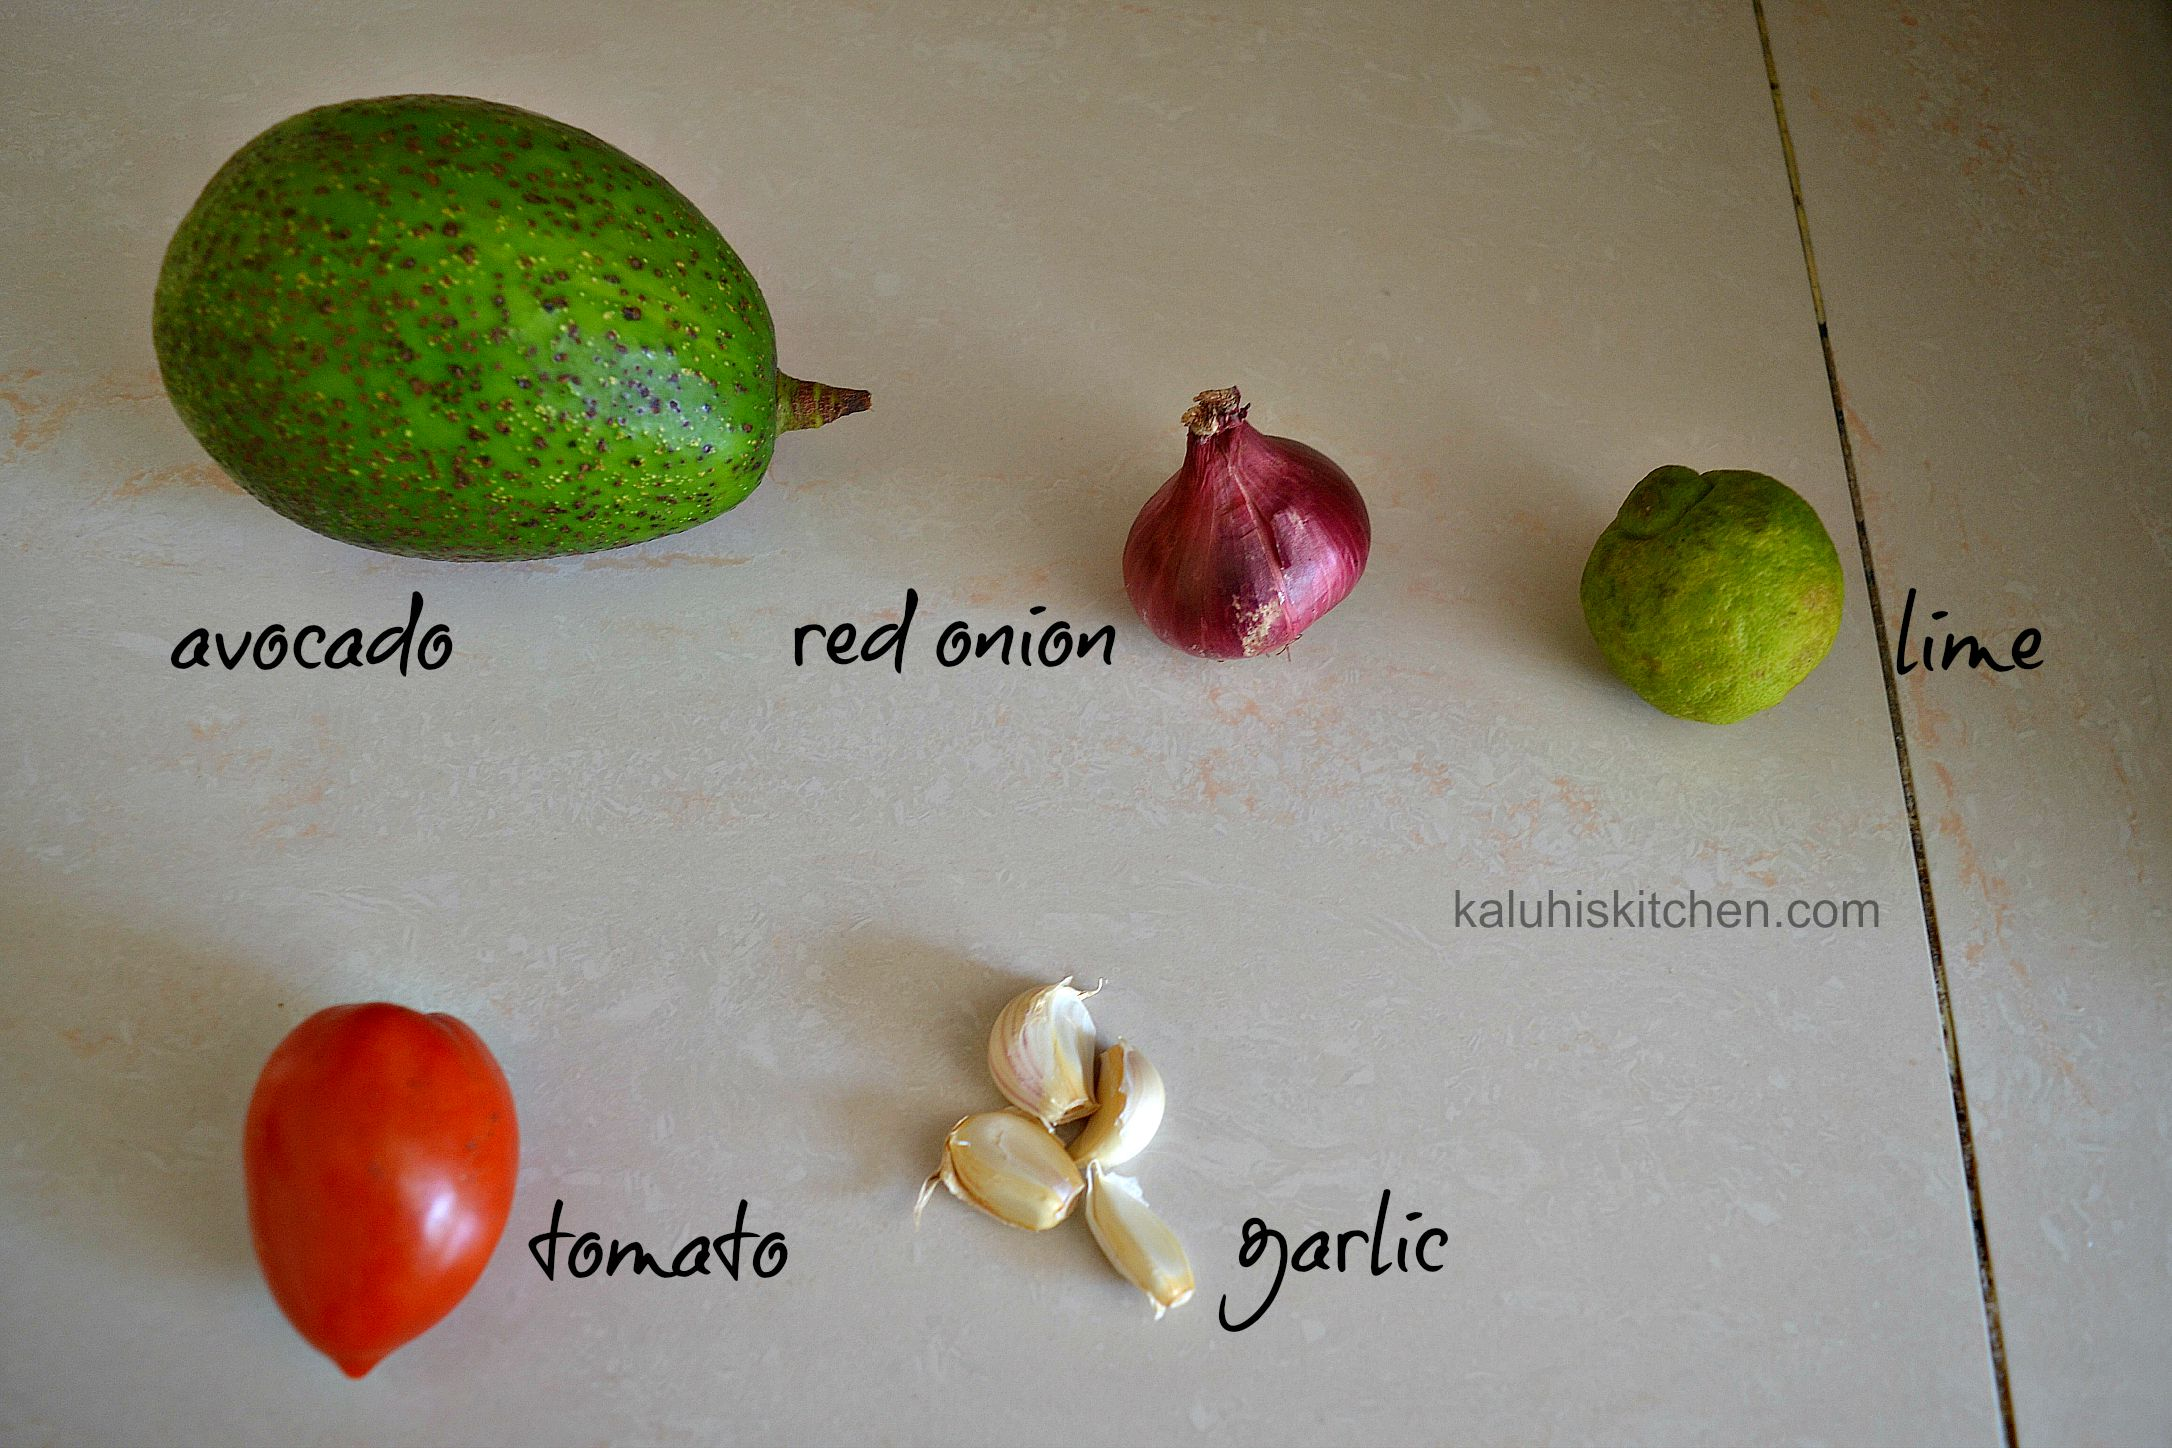 ingredients for the onion and lime guacamole by kaluhi adagala of kaluhiskitchen.com